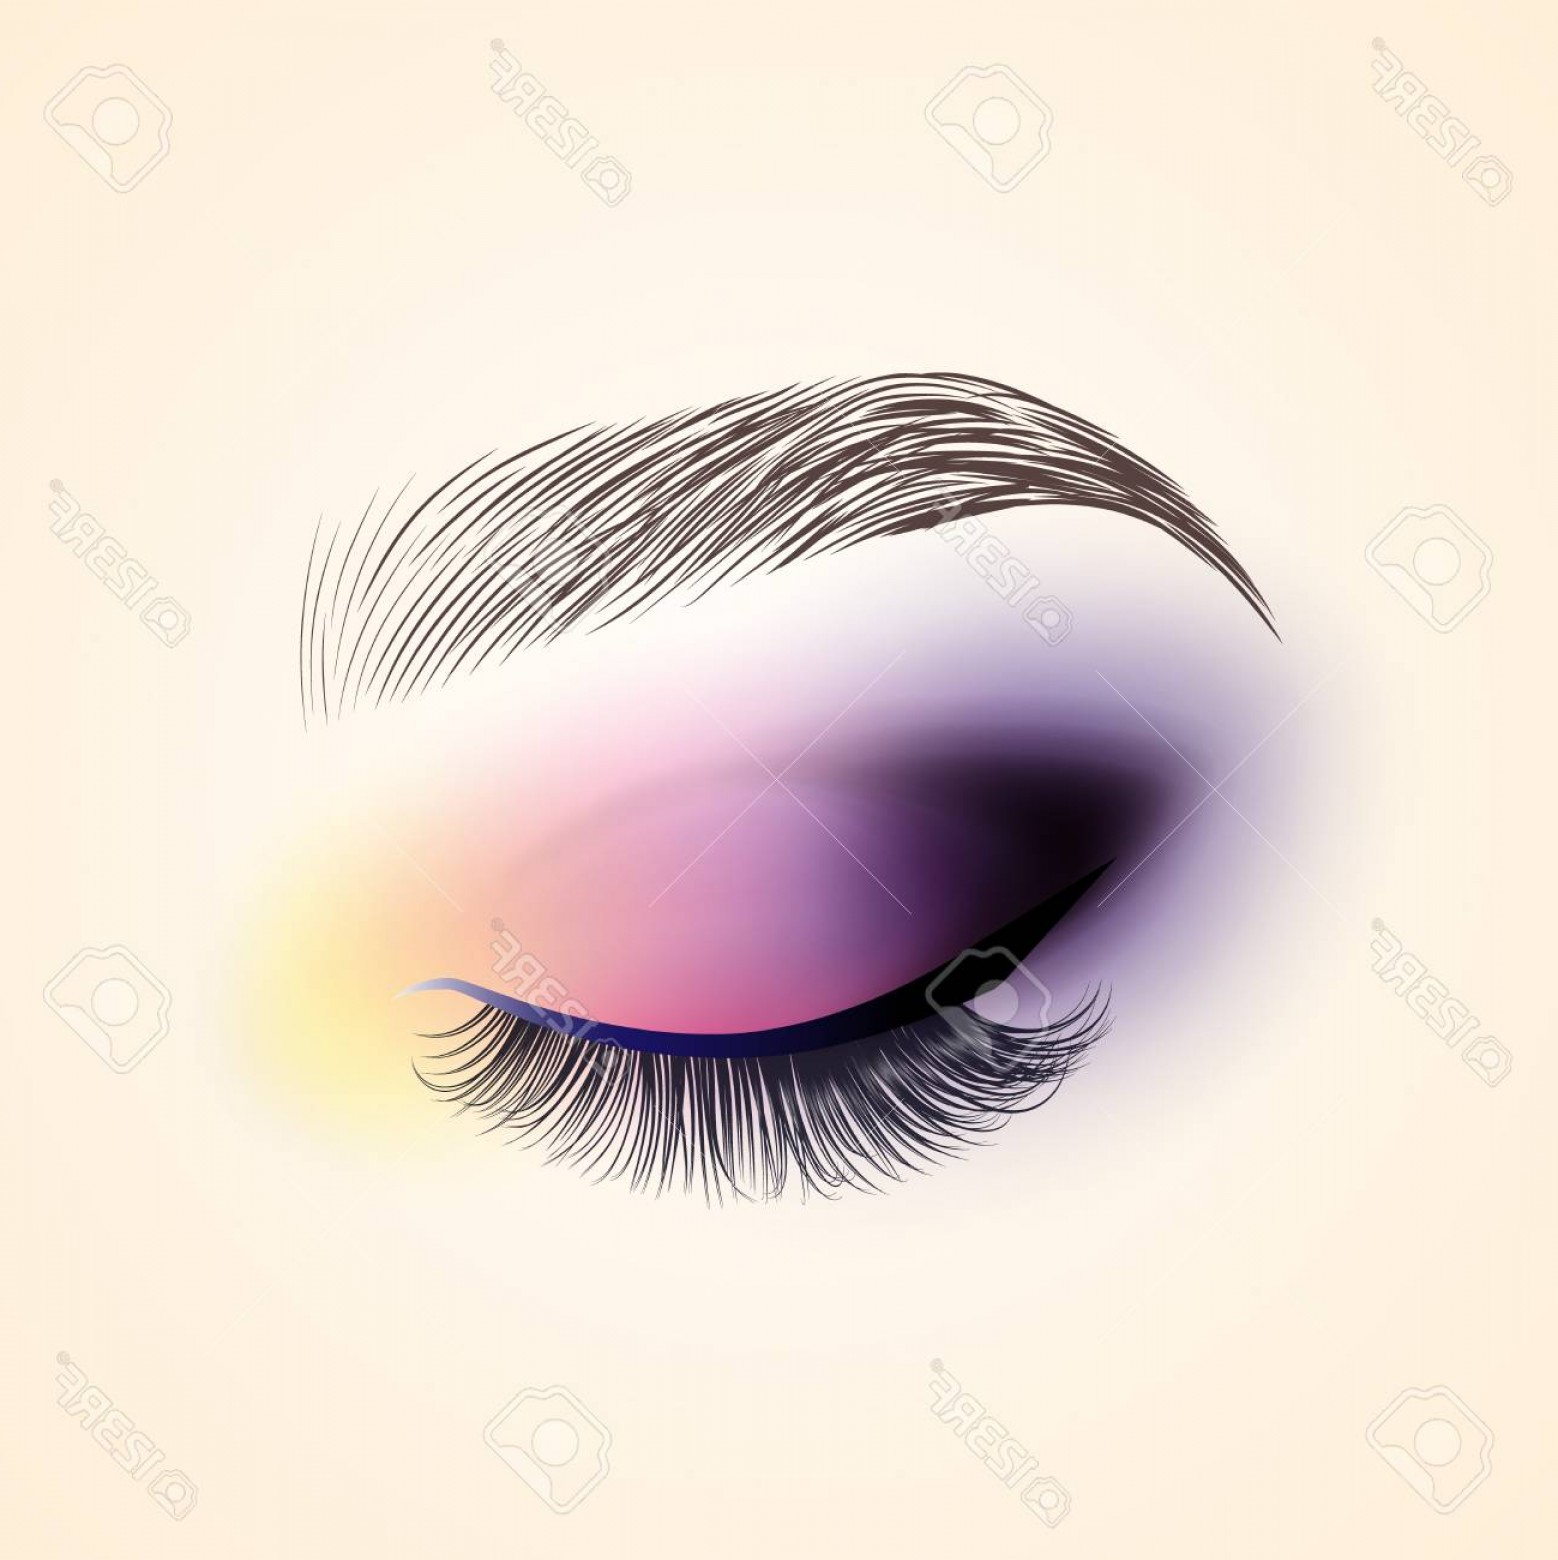 Vector Illustration Eyes Makeup: Photostock Illustration Eye Makeup Closed Eye With Long Eyelashes Vector Illustration